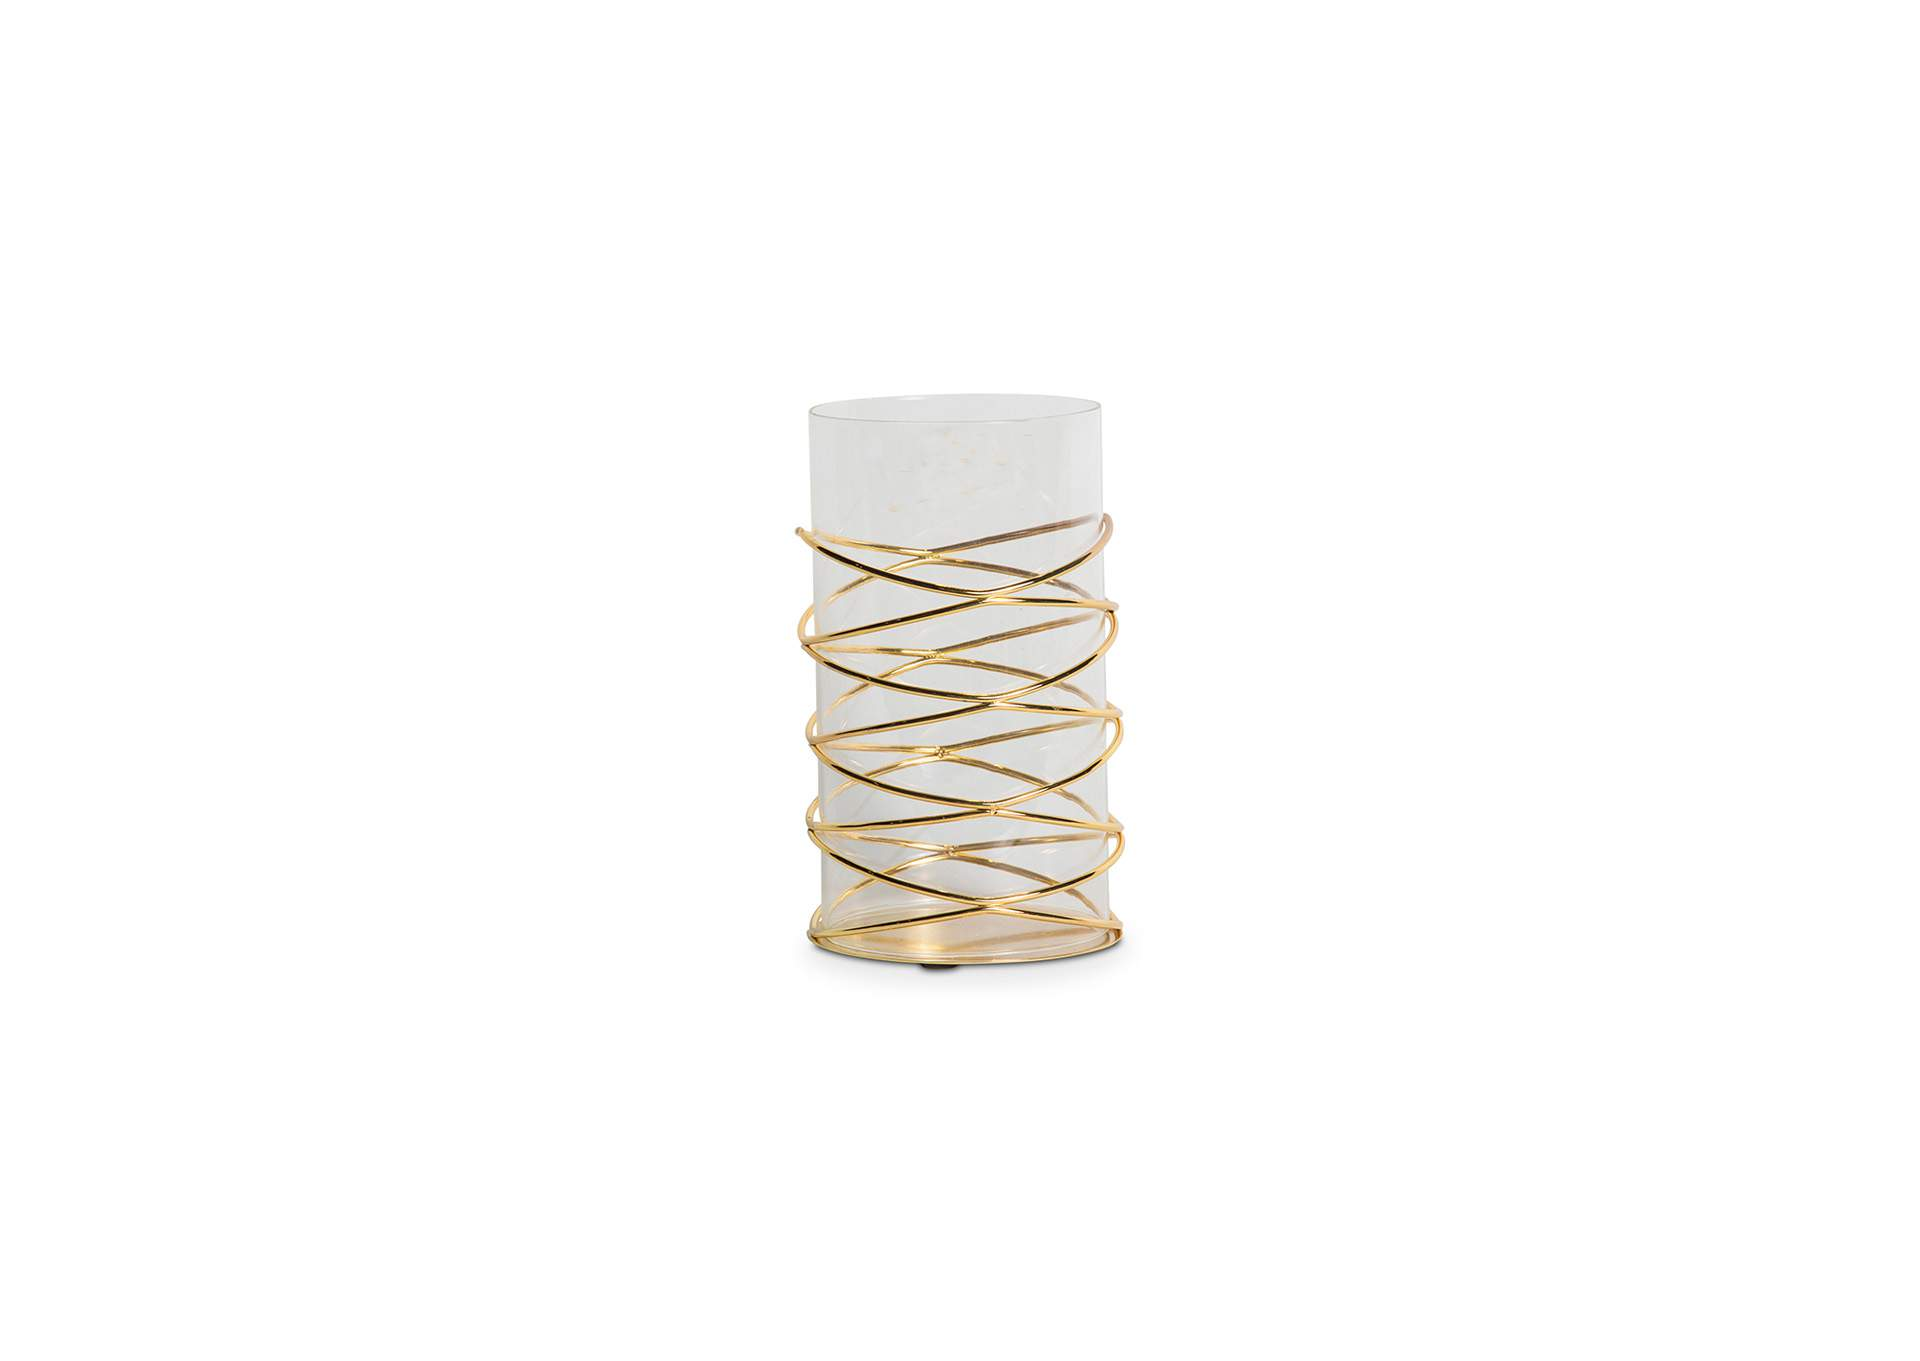 Montreal Gold Crossover Candle Holder,AICO